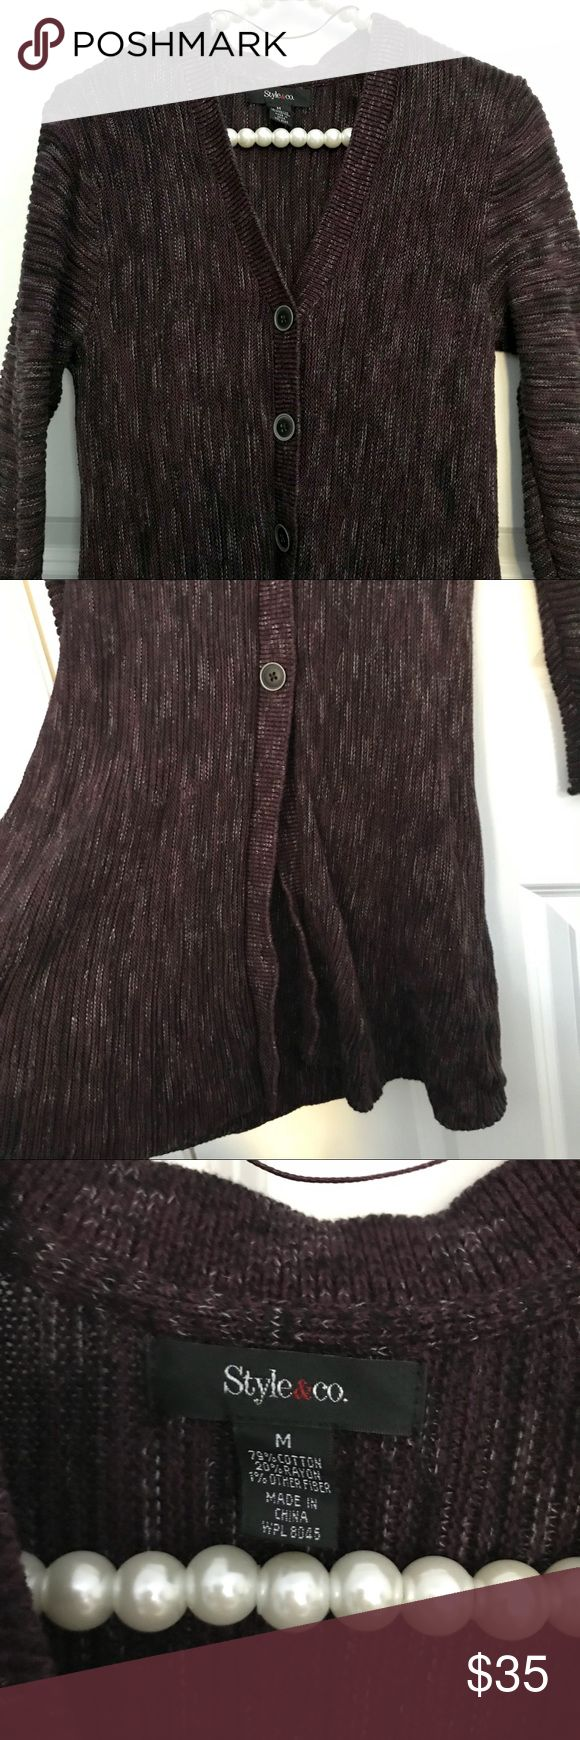 "Macy's Style & Co. Purple Multi Cardigan Sweater EUC $69.50 Macy's Style & Co. ""Dark Grape Combo"" Multi Colored Cardigan Sweater featuring button up detail, forgiving fly away bottom, long sleeves, and v-neck style. Hits at hip, semi-long Sweater. Soft Cotton and rayon blend. Pretty dark purple with black and white accents. Perfect for work or casual wear, versatile from day to evening...great with slacks and jeans!Perfect winter sweater. Excellent pre-loved condition. Worn once, hand washed…"